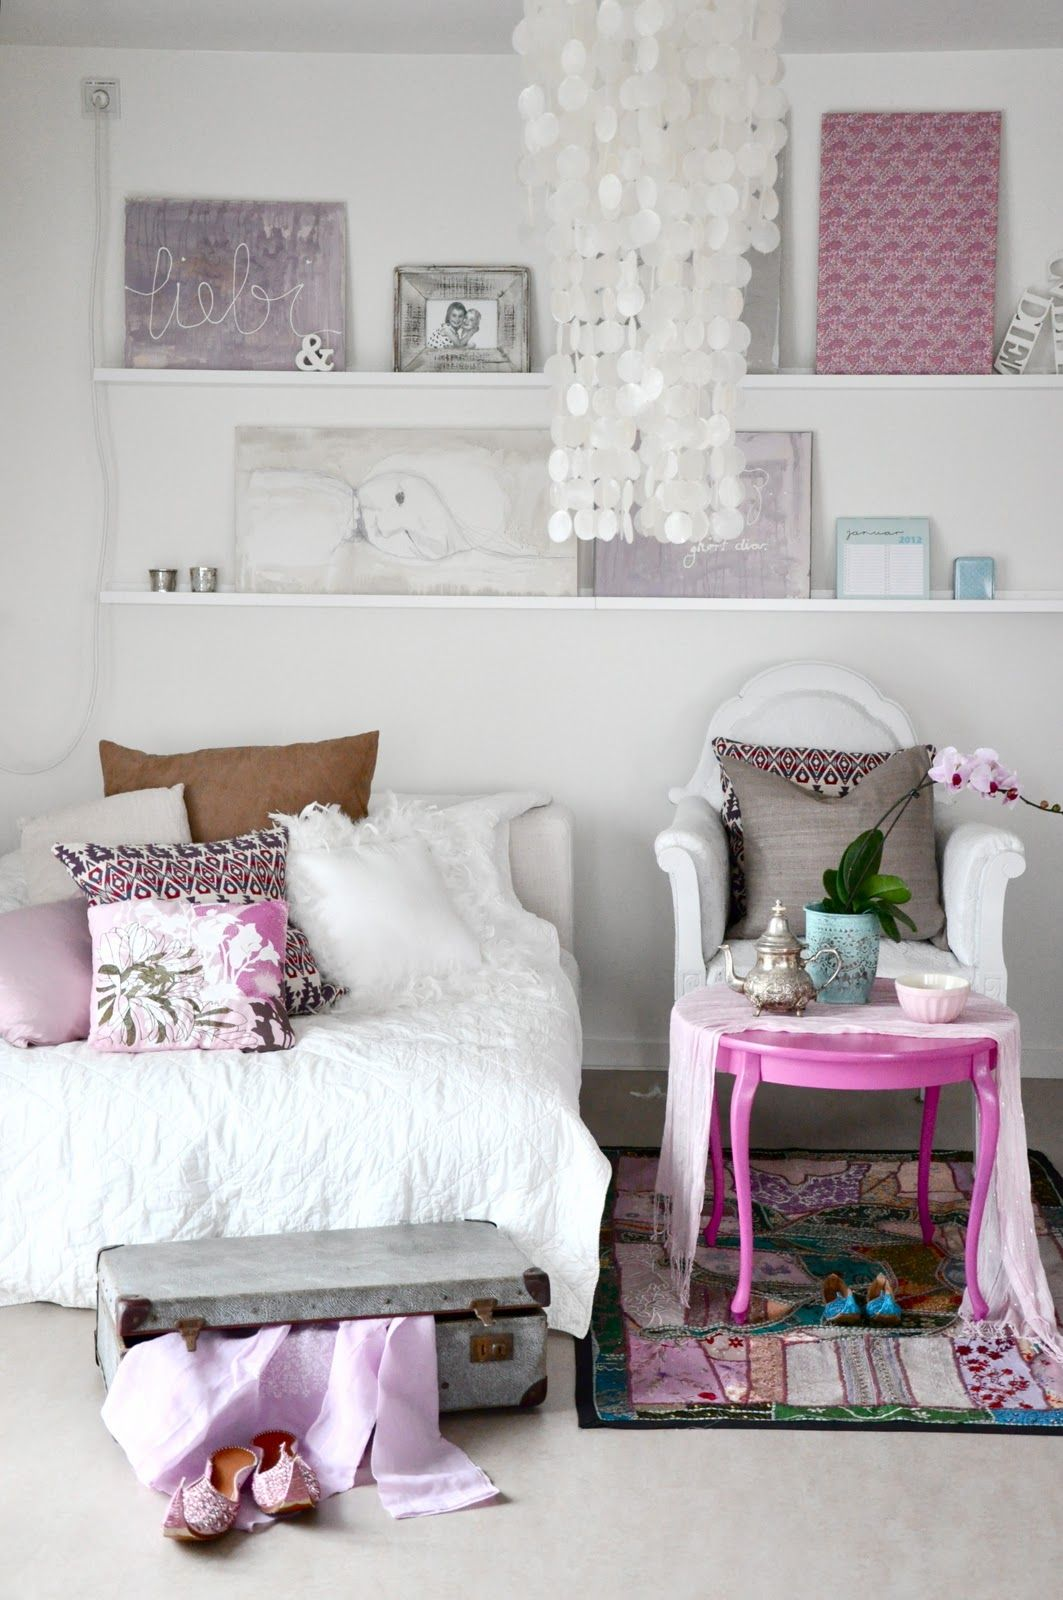 white walls and comforter, pink and purple accents, floating shelves ...